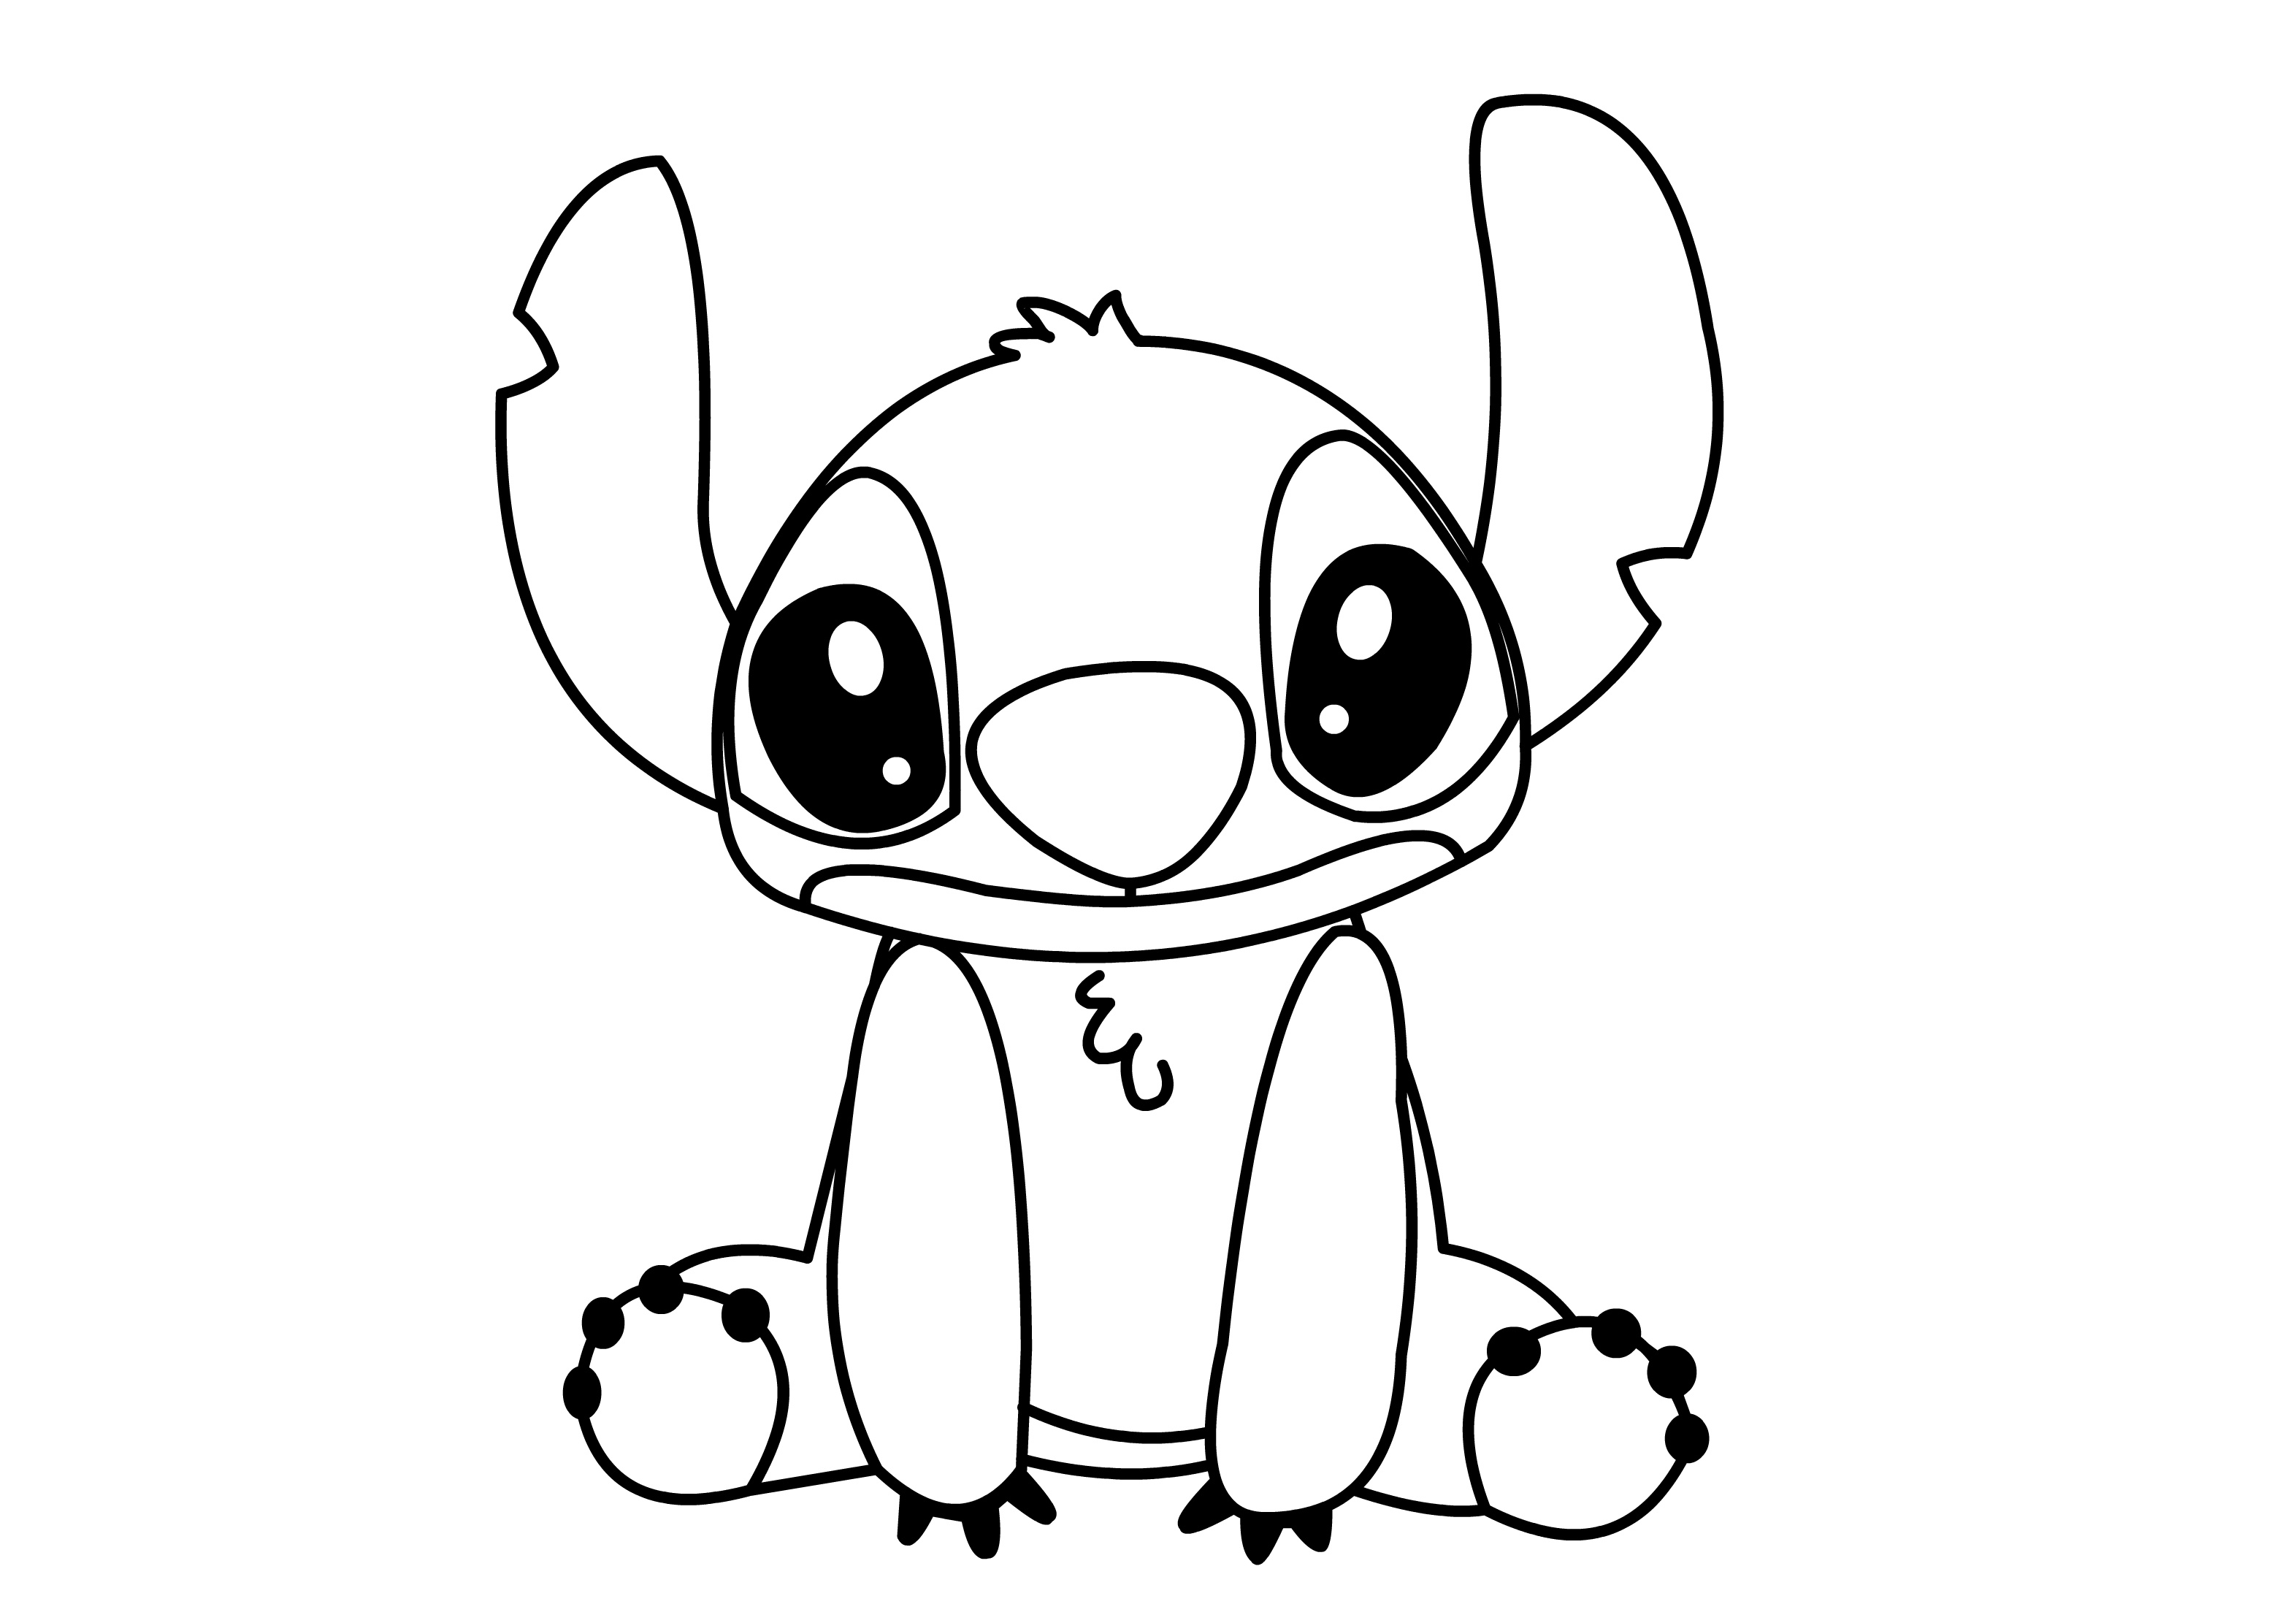 stitch color stitch coloring pages free printable stitch coloring pages color stitch